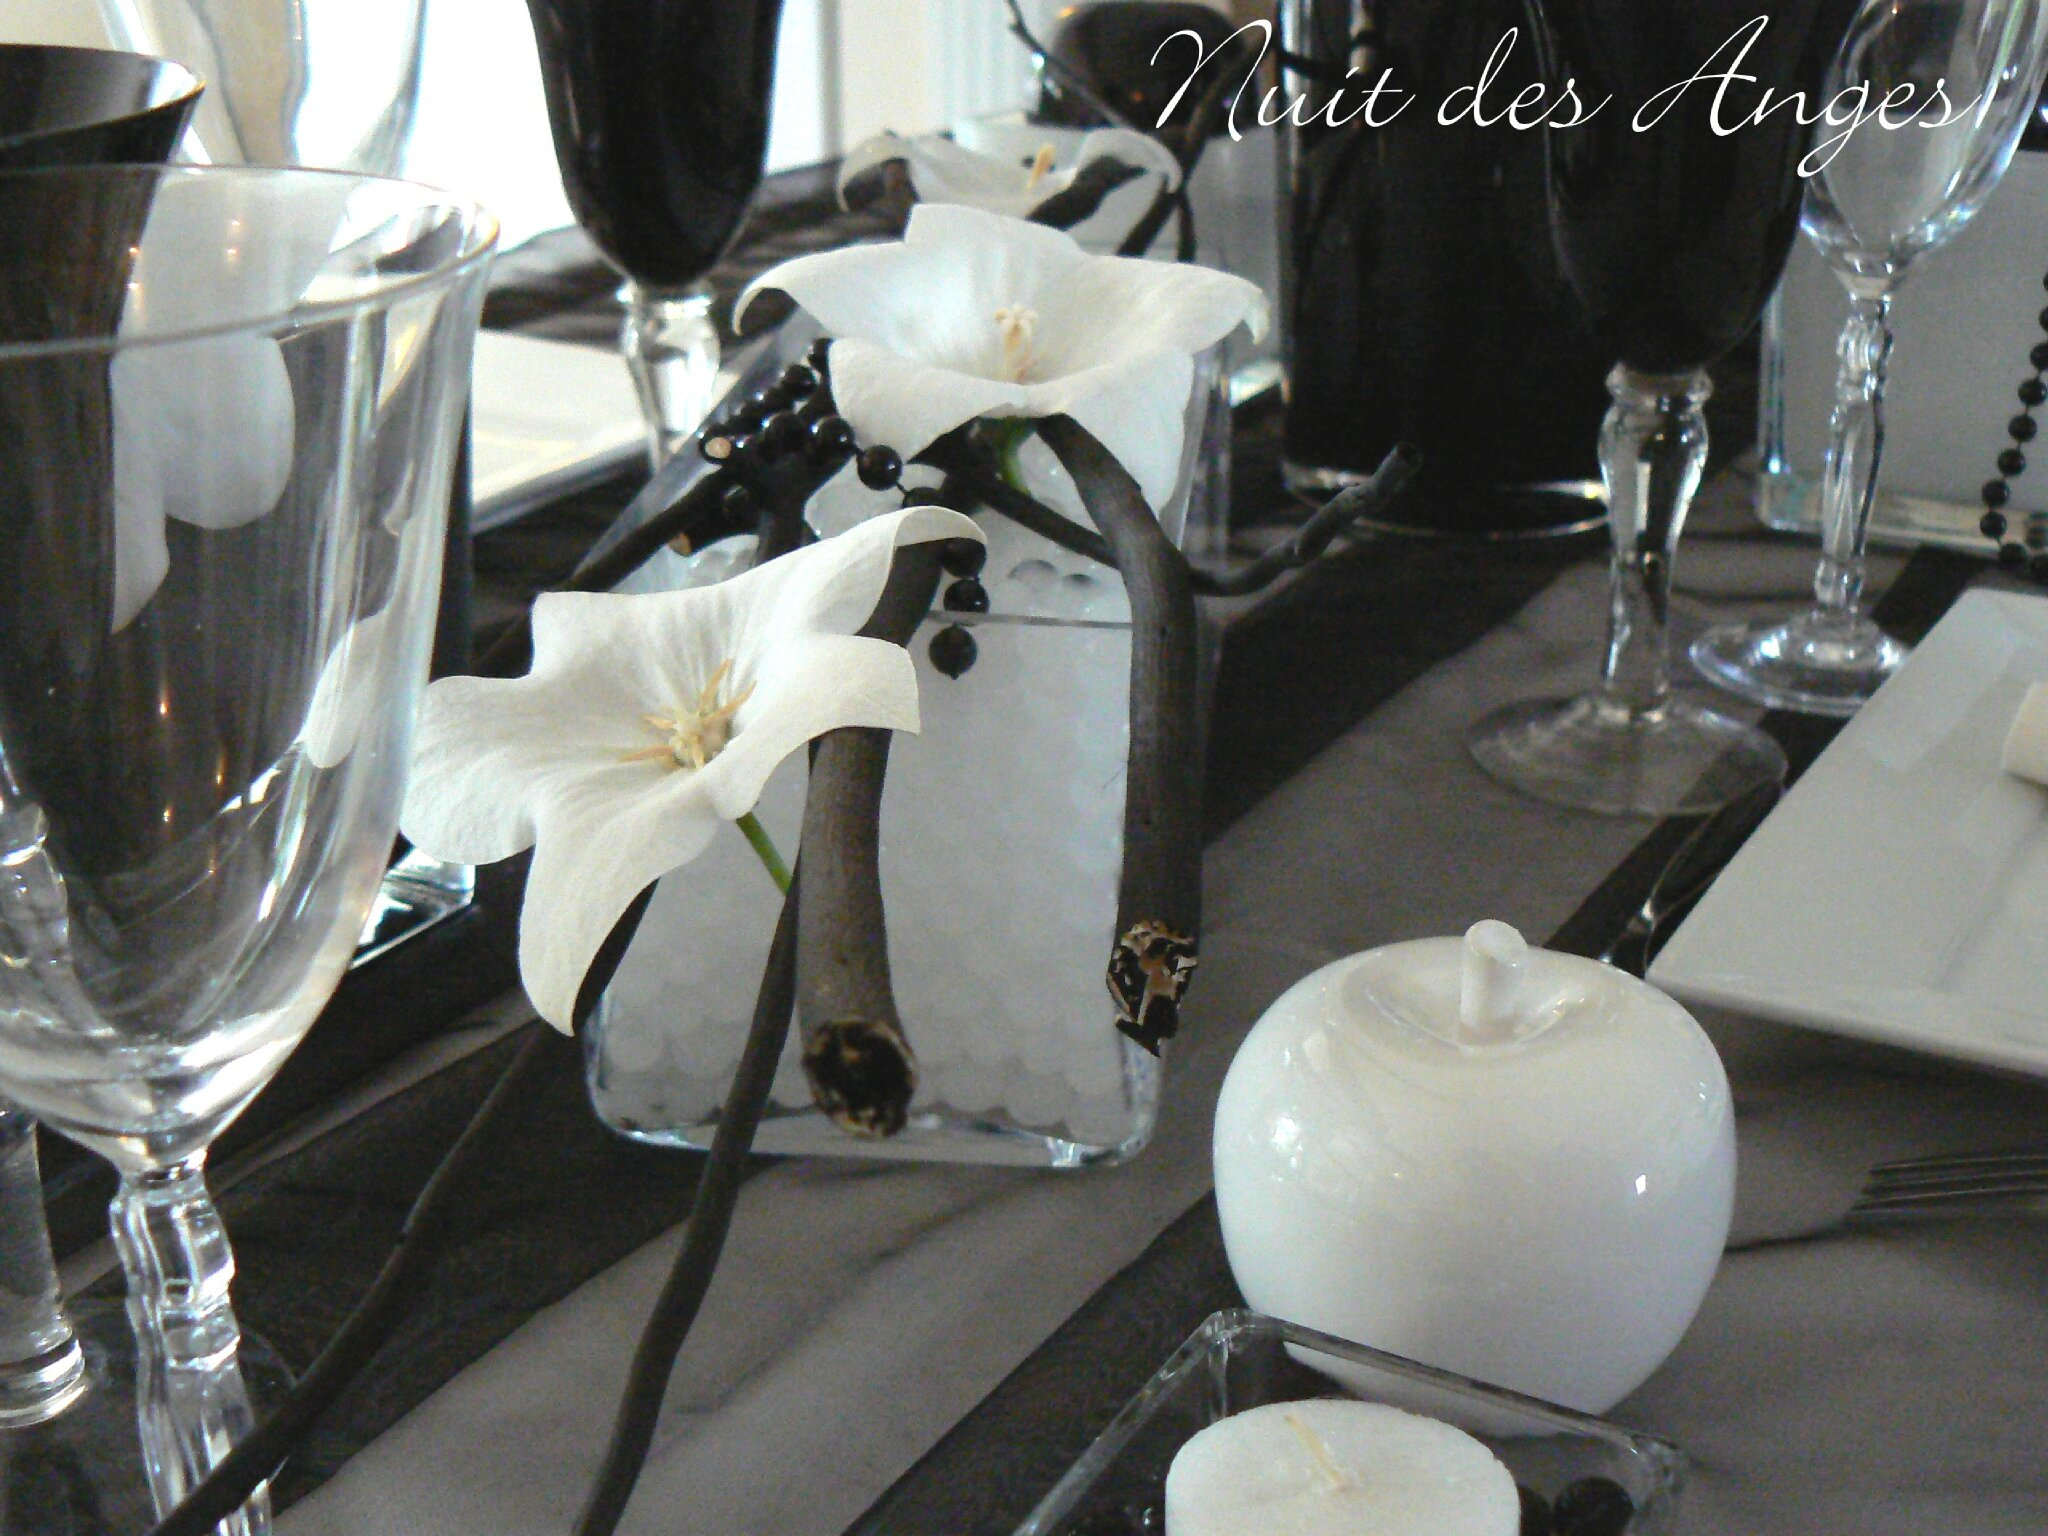 nuit des anges d coratrice de mariage d coration de table noir et blanc 006 photo de. Black Bedroom Furniture Sets. Home Design Ideas